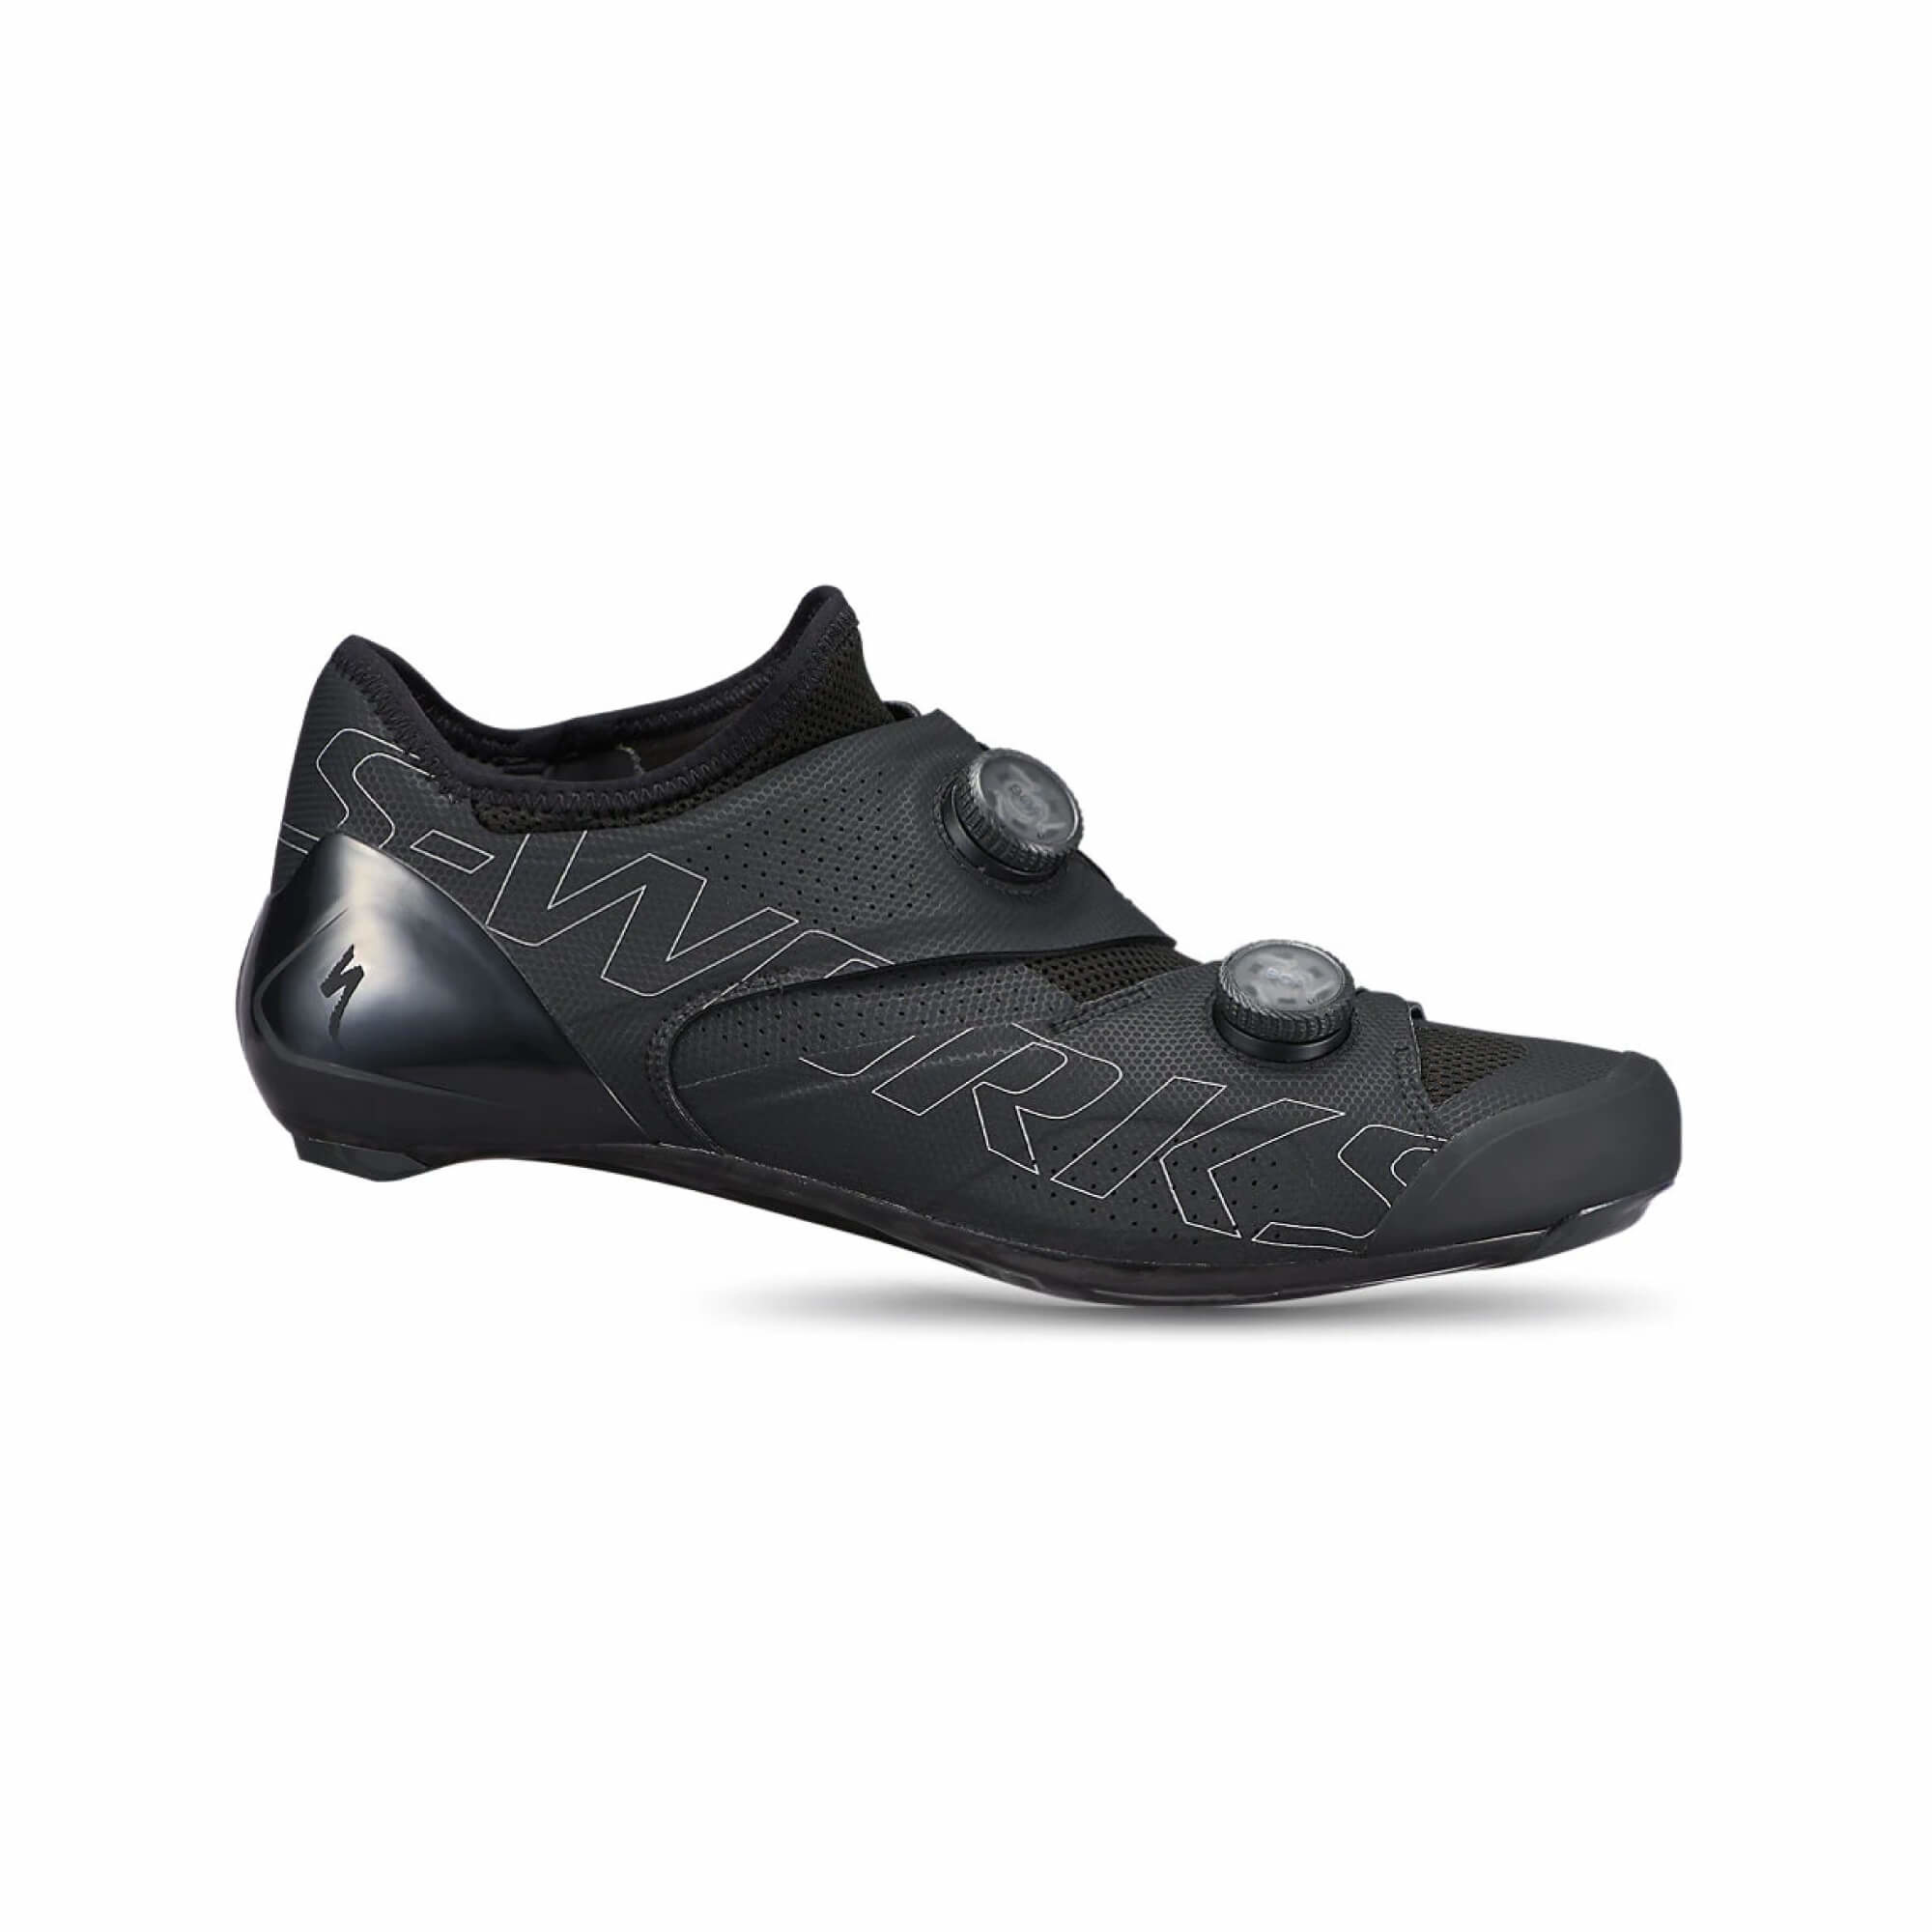 S-Works Ares Road Shoes 2021-2